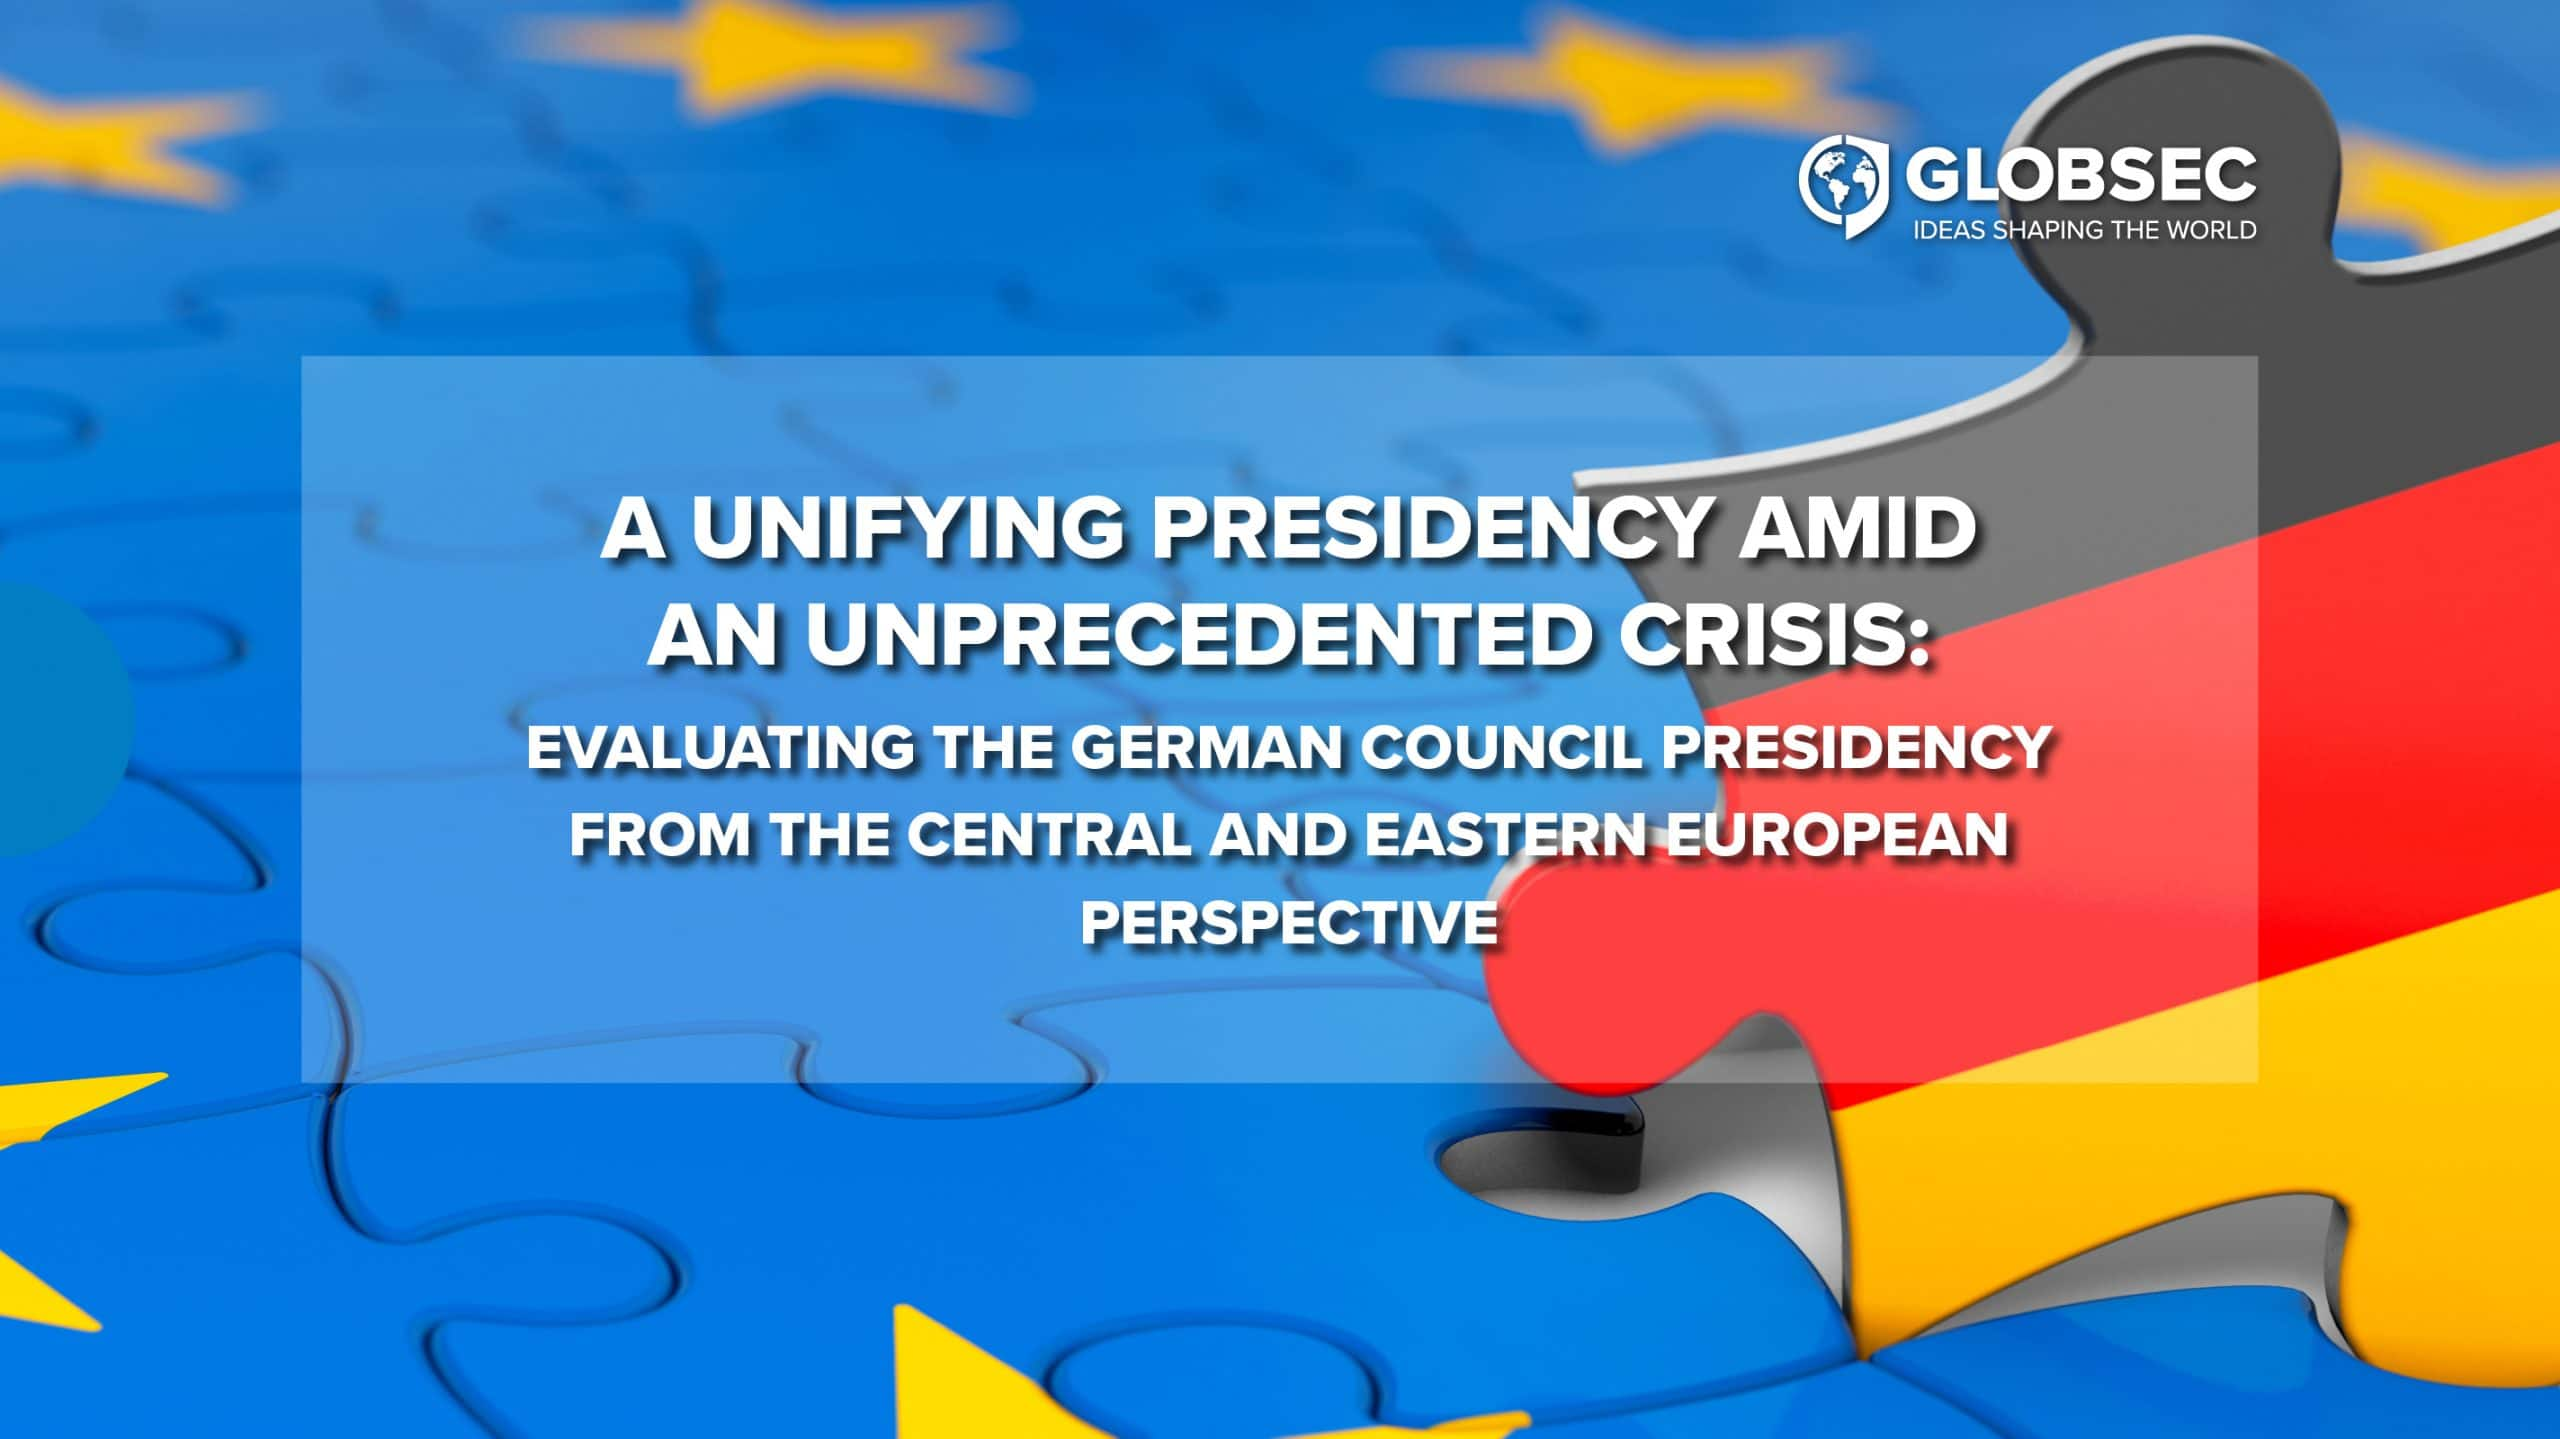 A Unifying Presidency Amid an Unprecedented Crisis: Evaluating the German Council Presidency From the Central and Eastern European Perspective